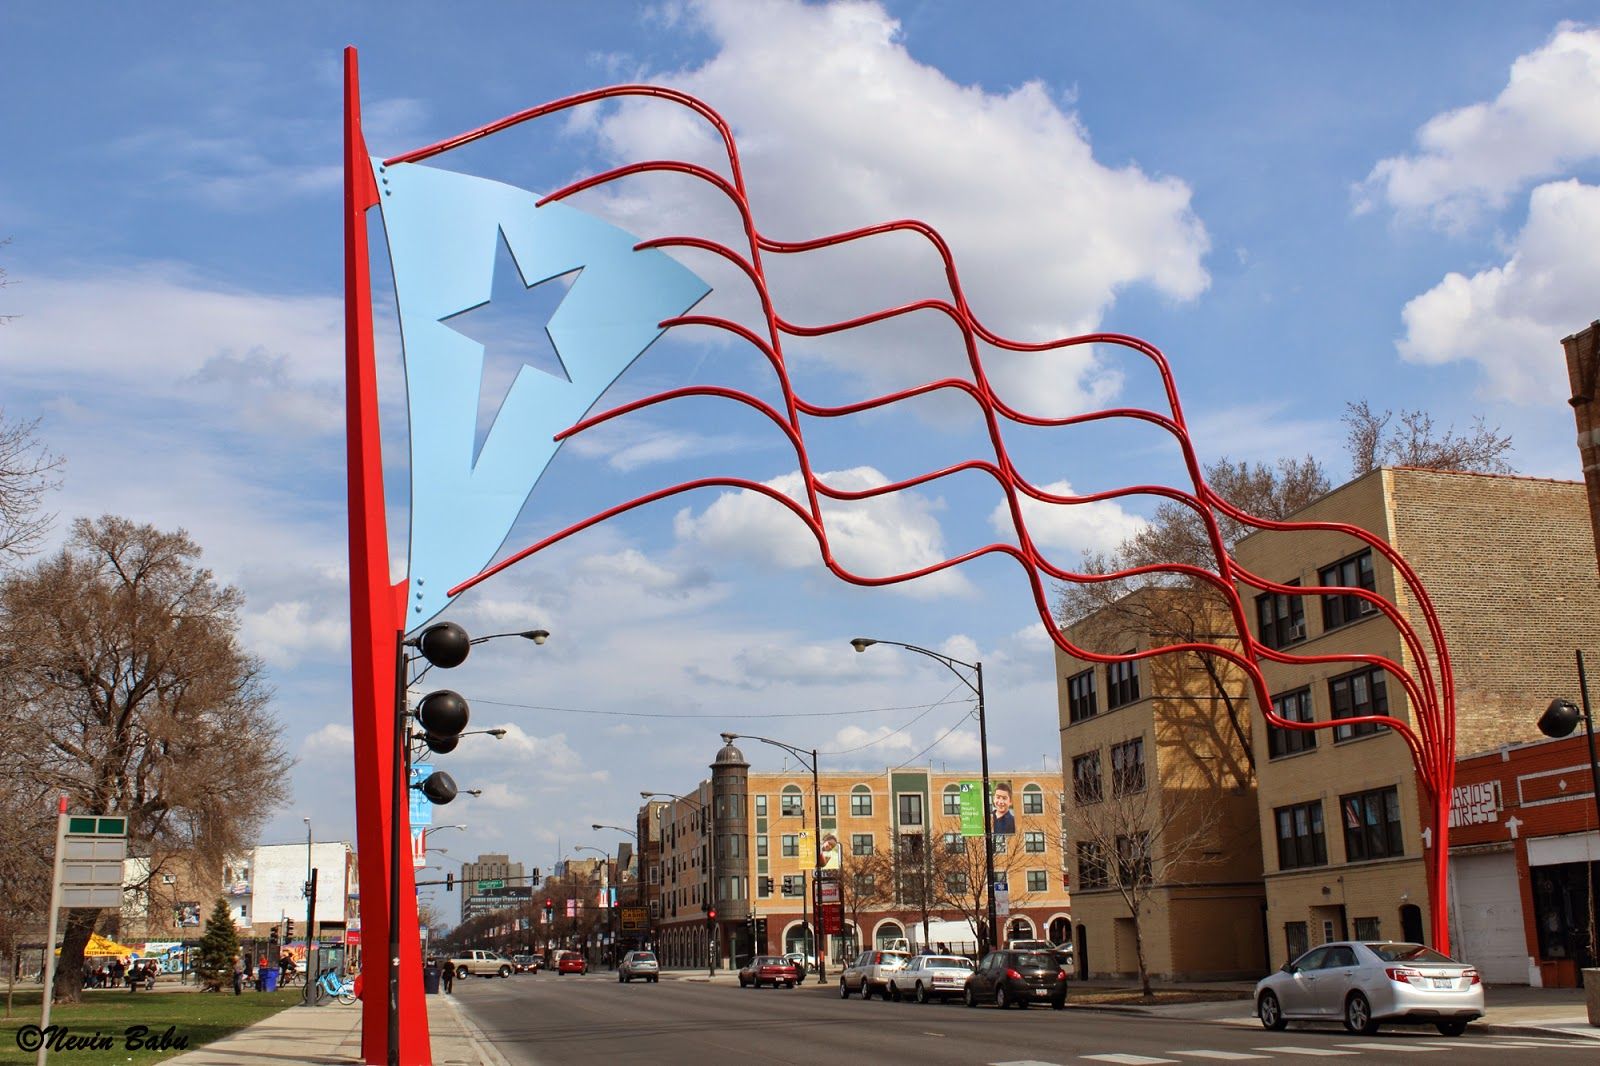 Puerto Rican flag Sculpture at Paseo Boricua